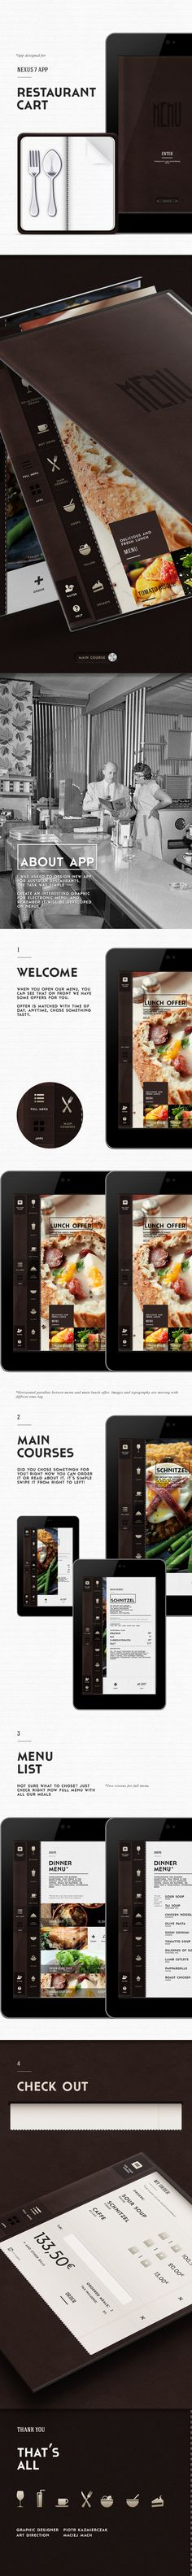 Restaurant App / MyntCart by Piotr Kazmierczak, via Behance